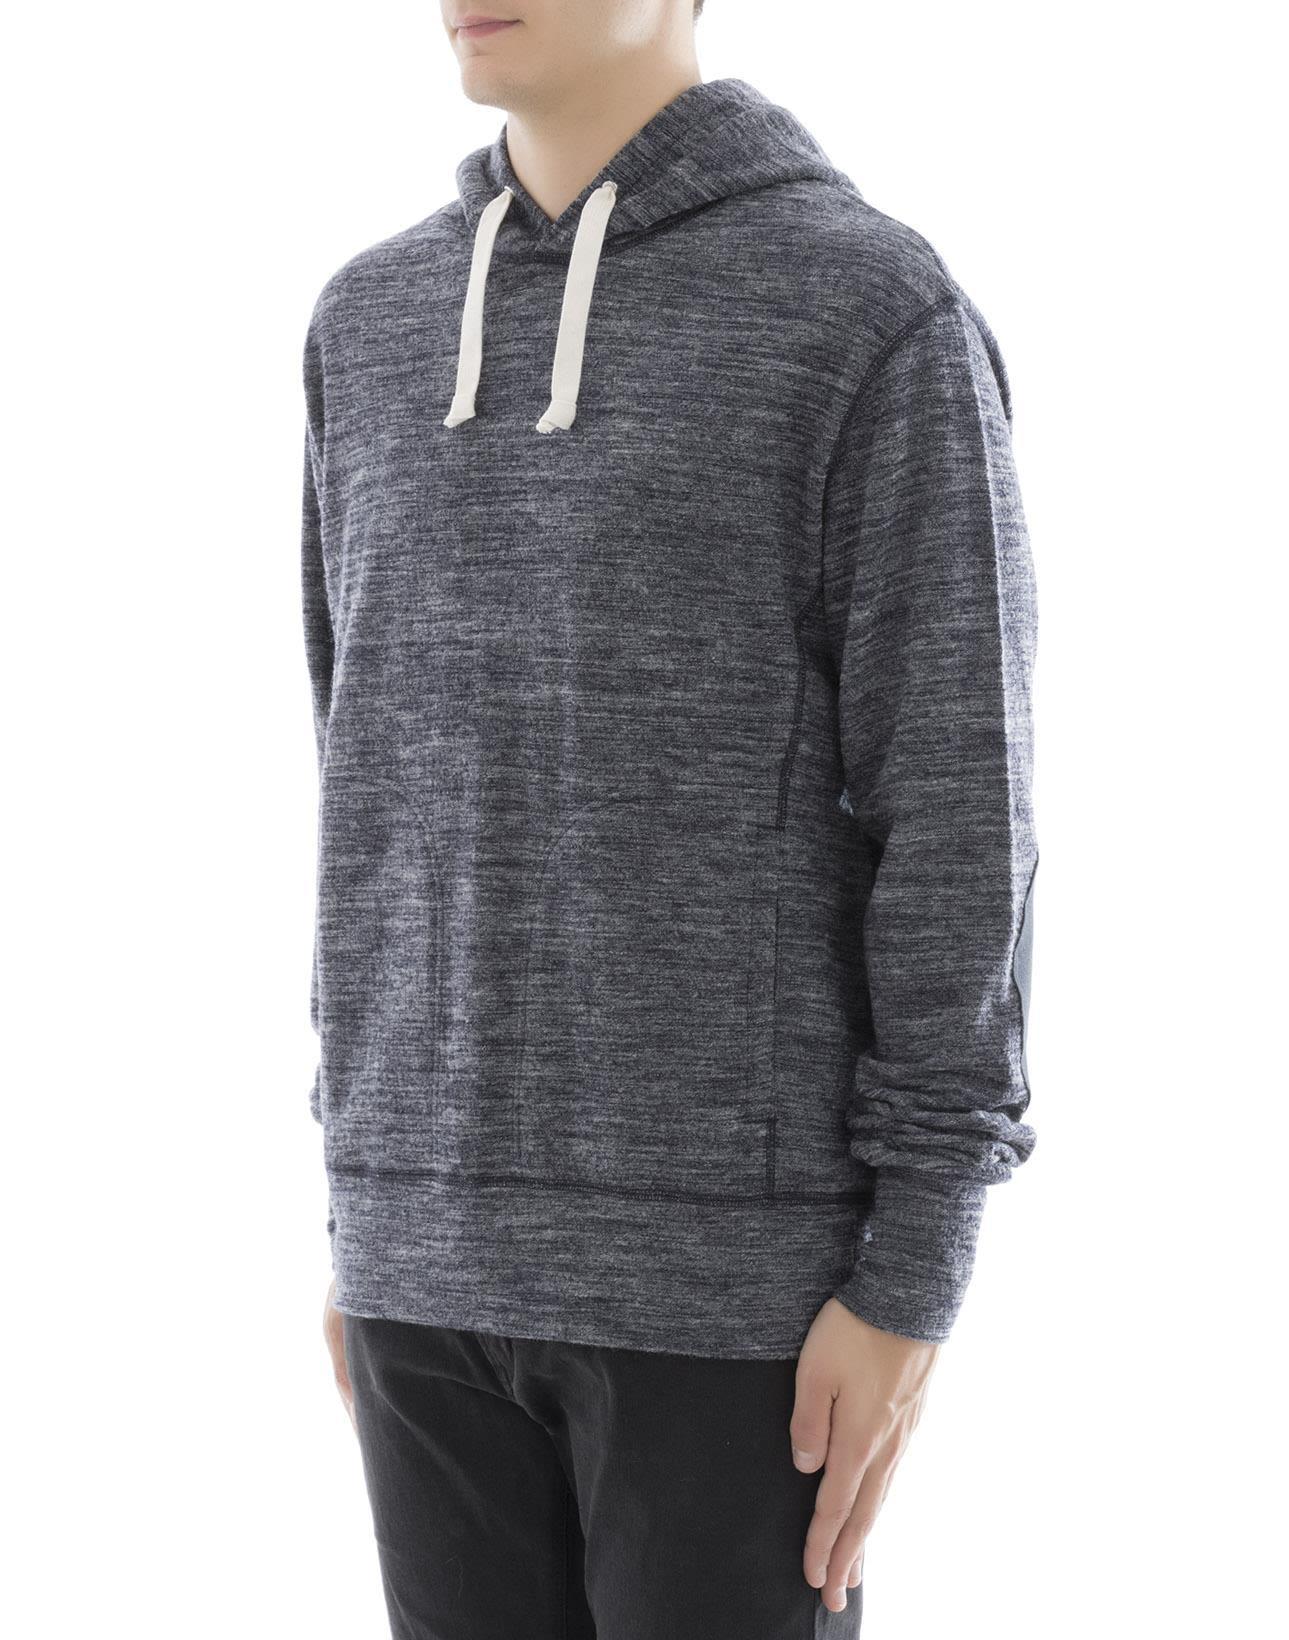 Free shipping BOTH ways on Sweaters, Gray, Women, from our vast selection of styles. Fast delivery, and 24/7/ real-person service with a smile. Click or call